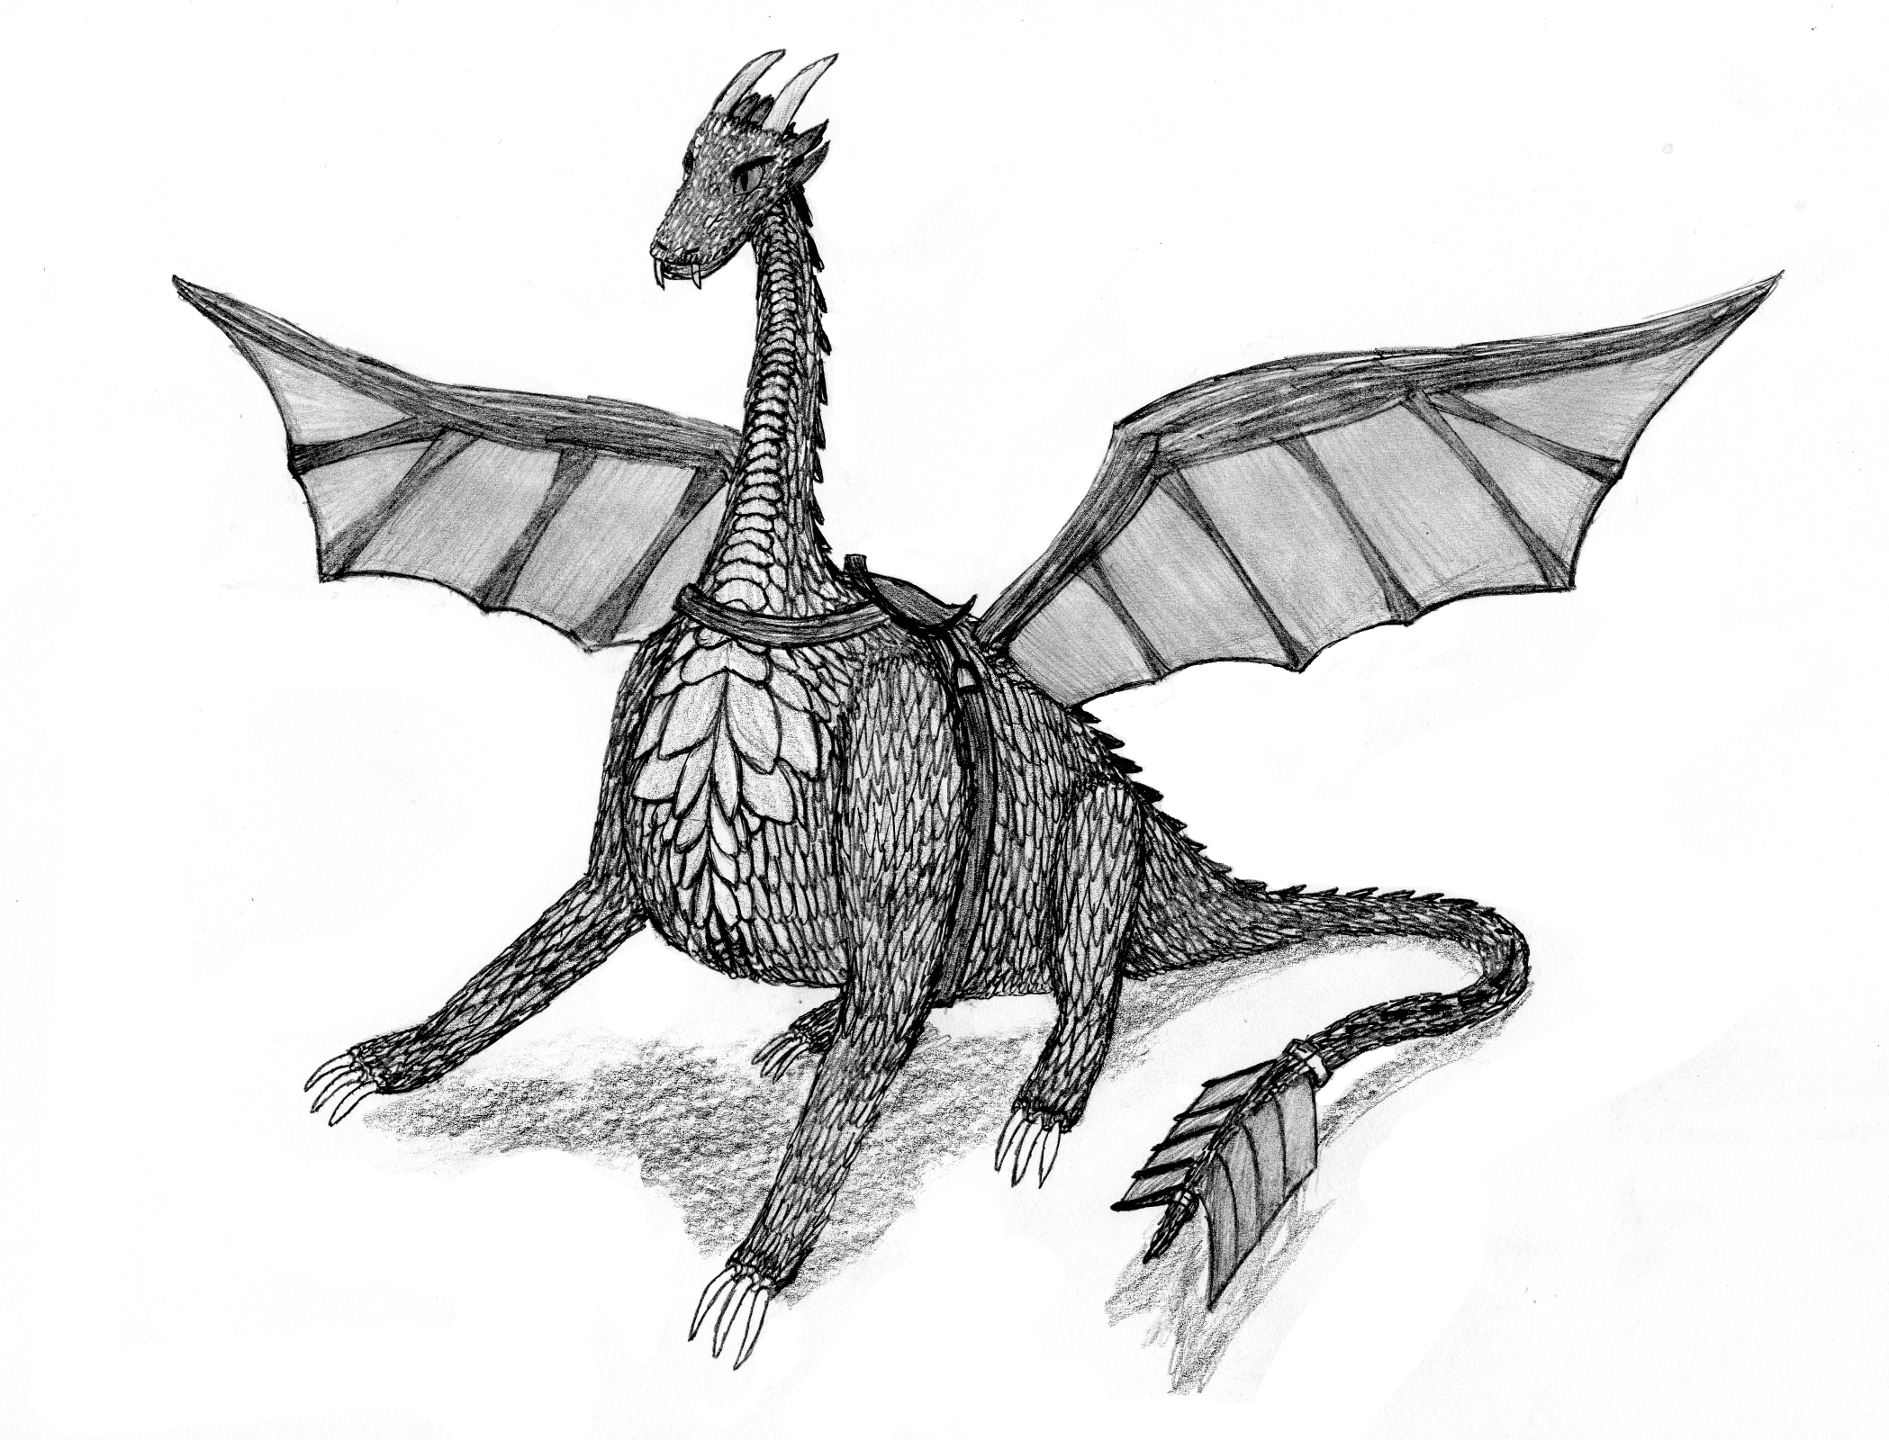 Drawings of toothless